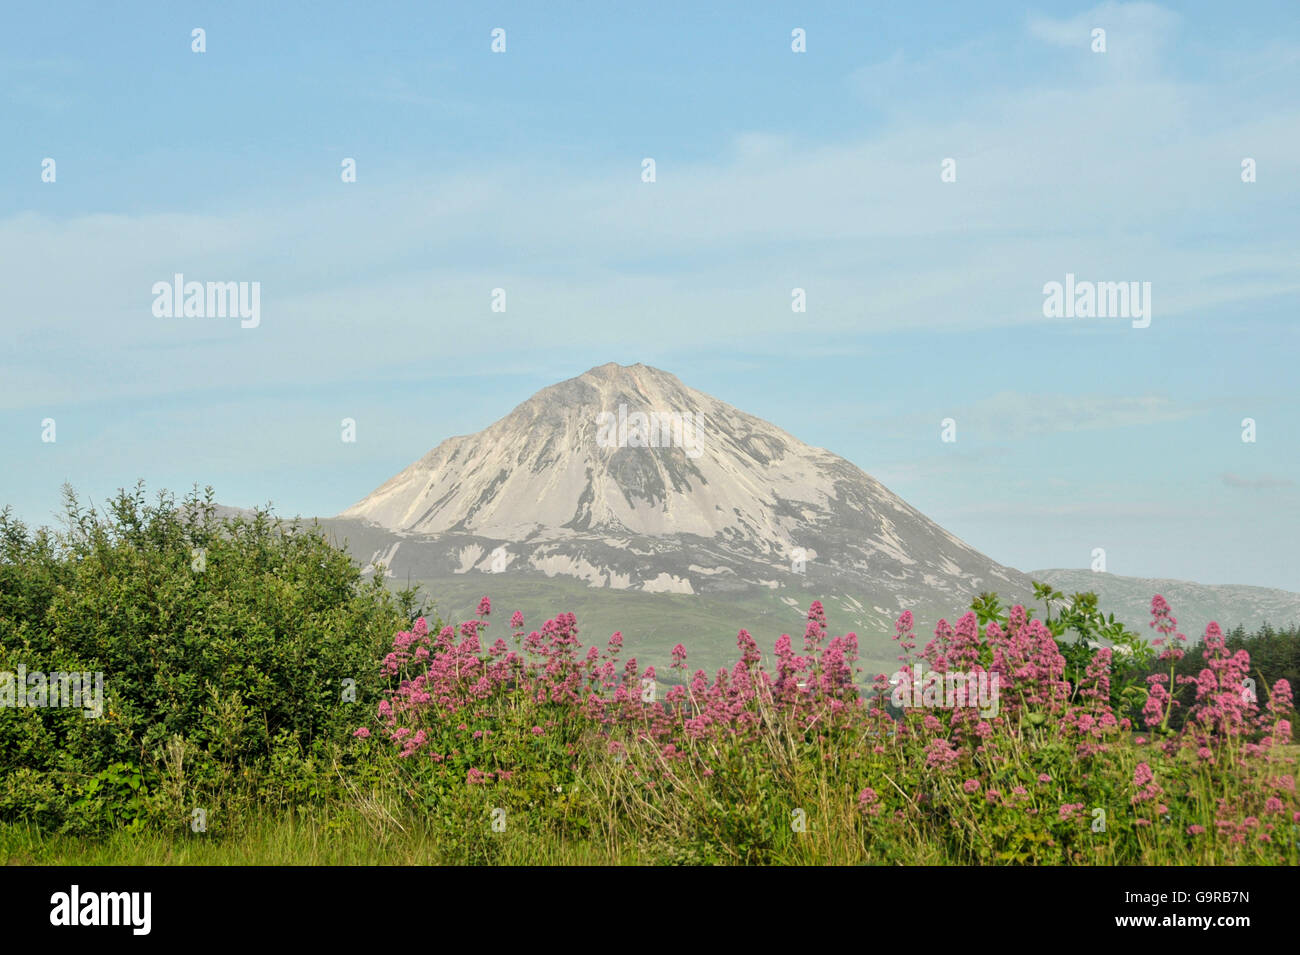 View of Mount Errigal from Gweedore, County Donegal, Ireland - Stock Image